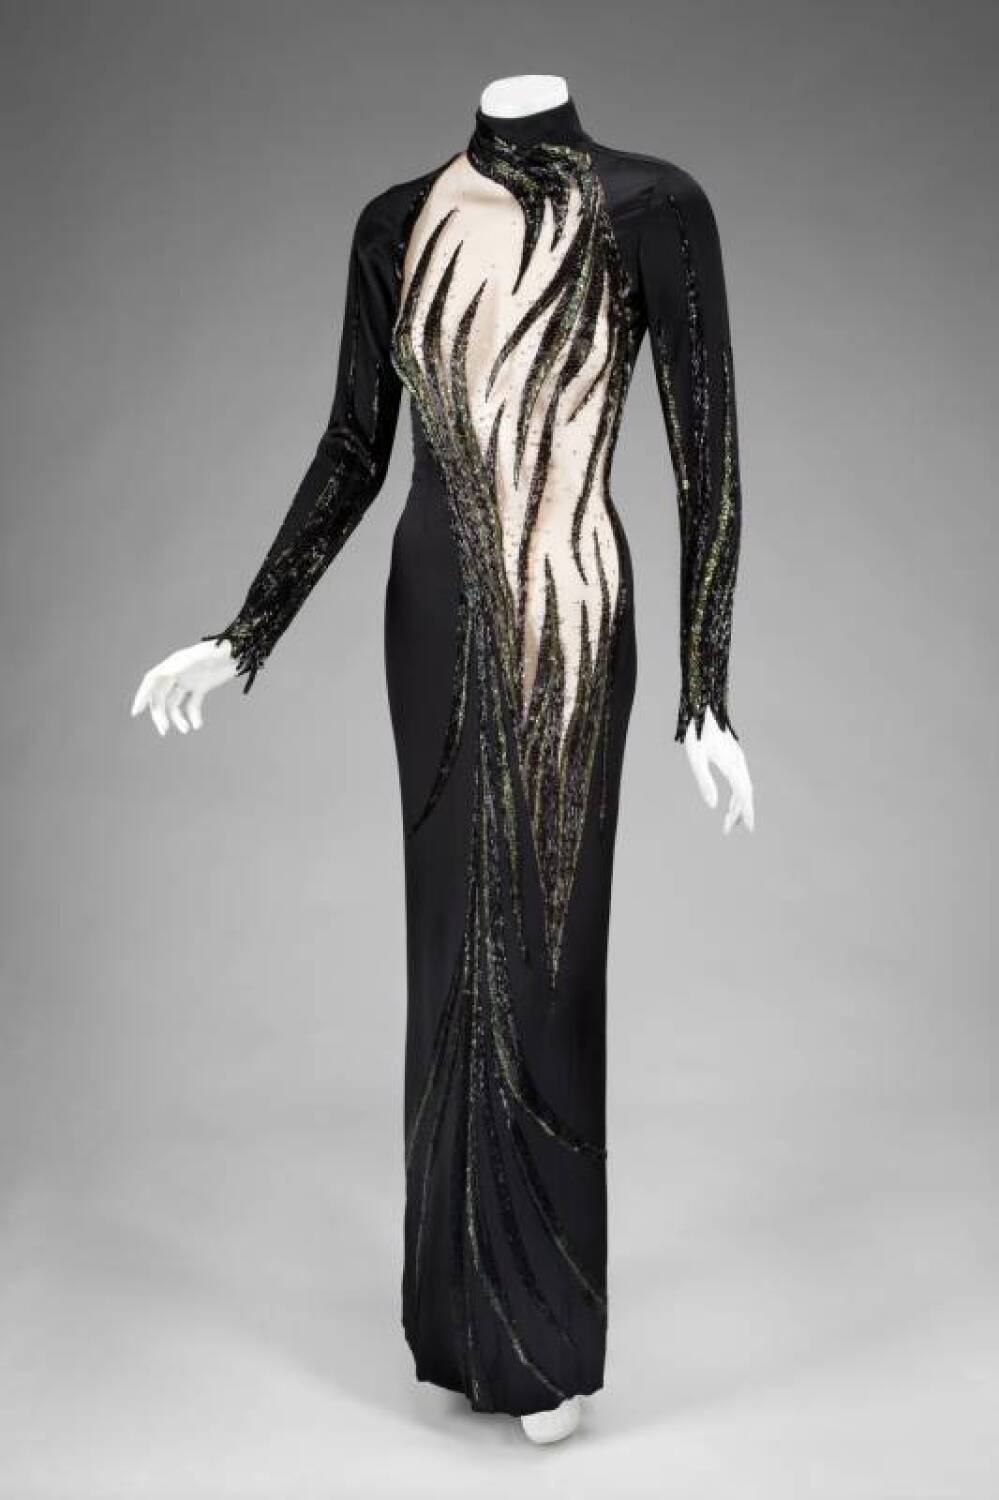 Cher Gown Designed By Bob Mackie Current Price 22500